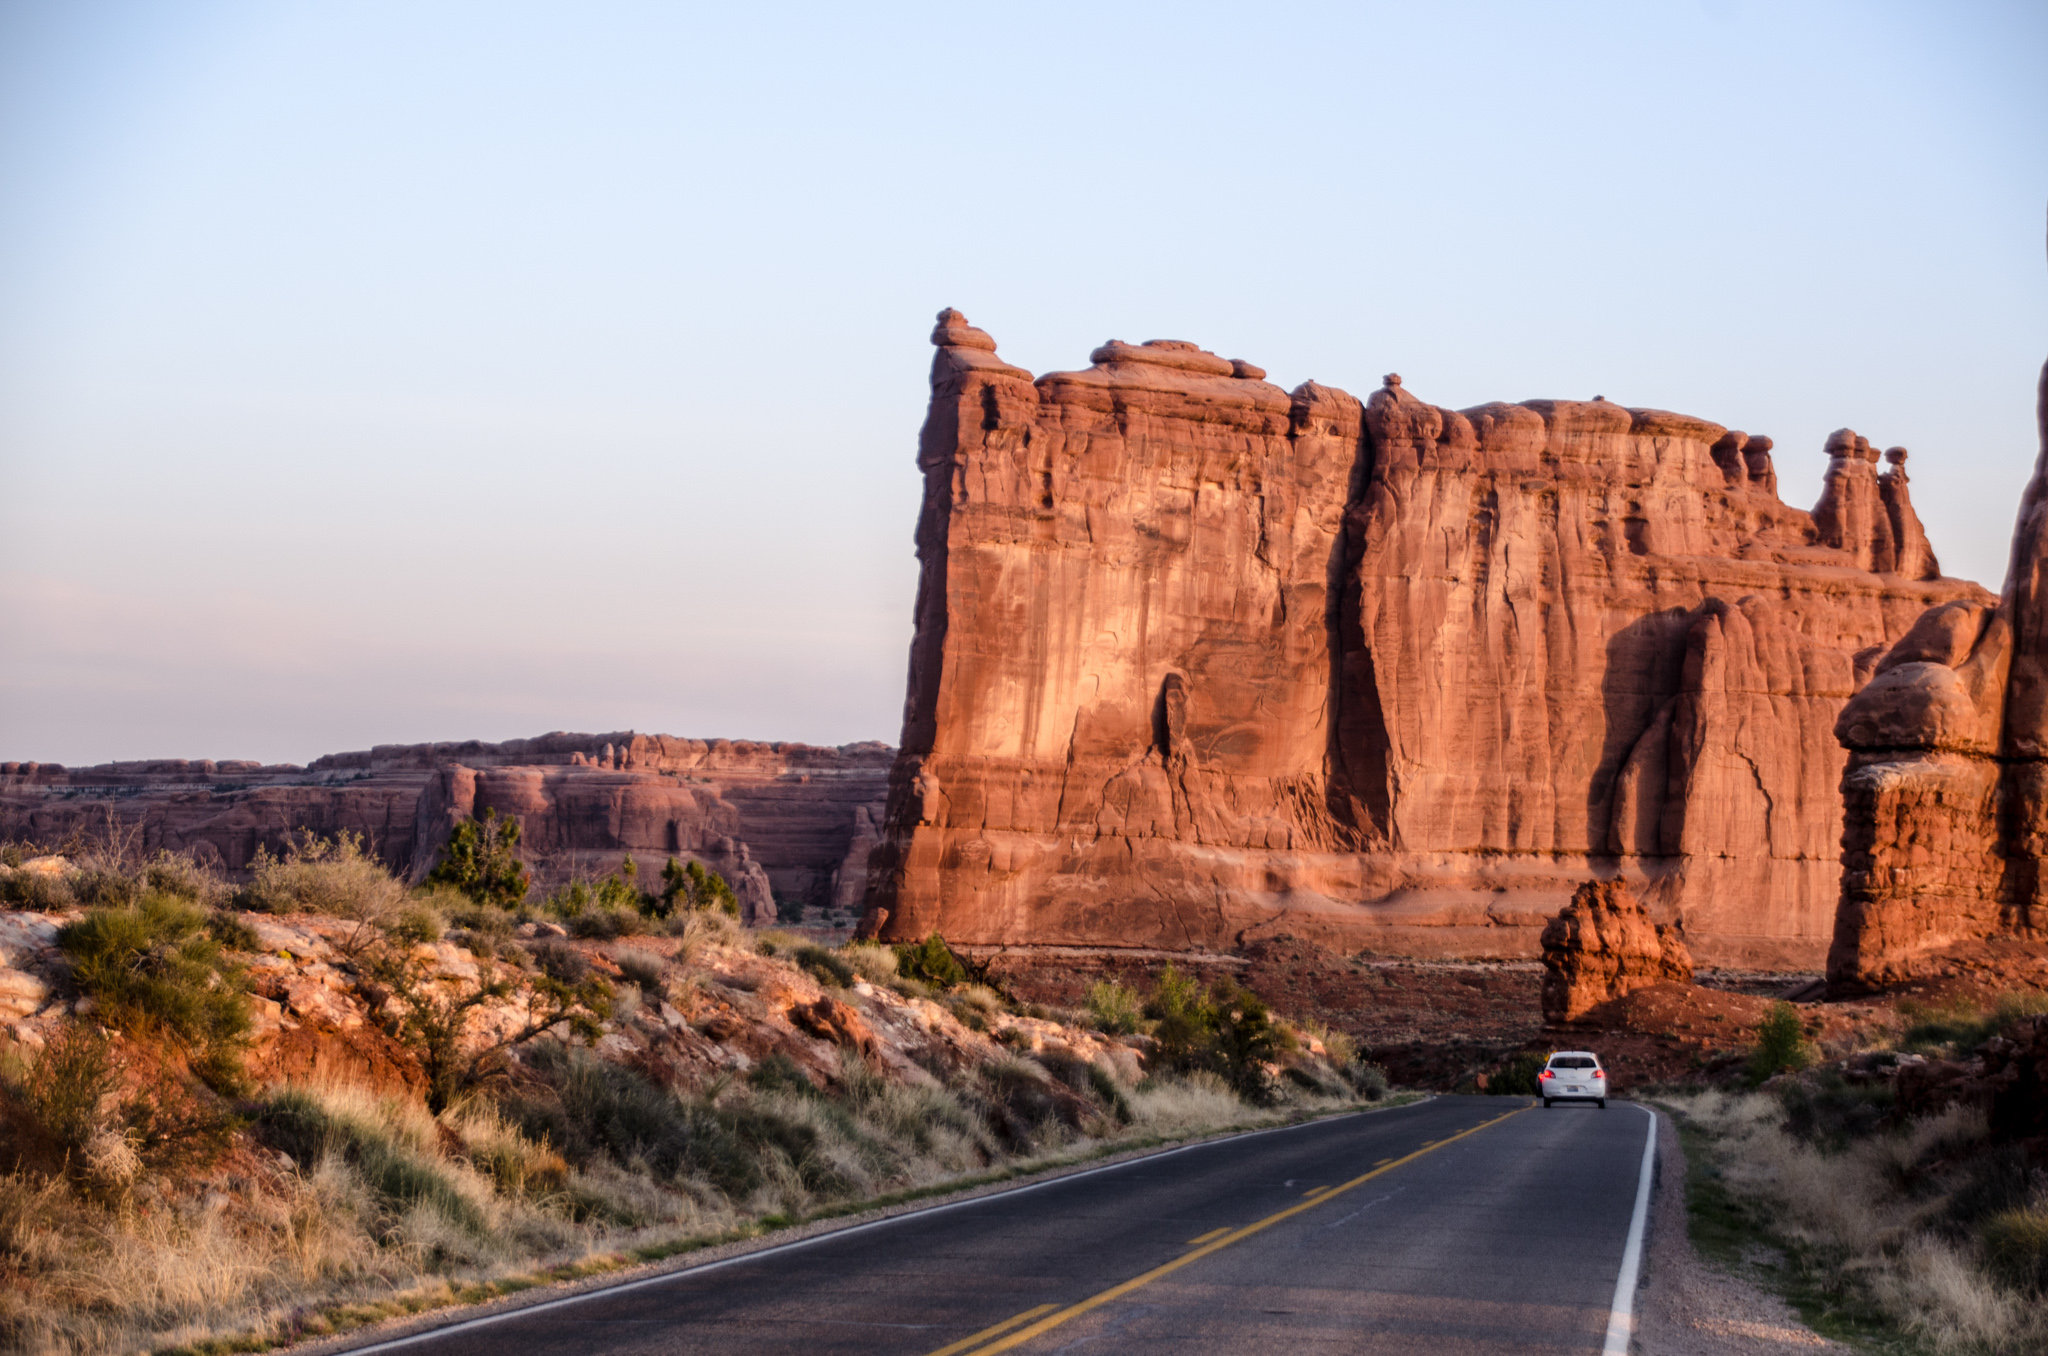 2015-04-01 - Arches National Park - 021